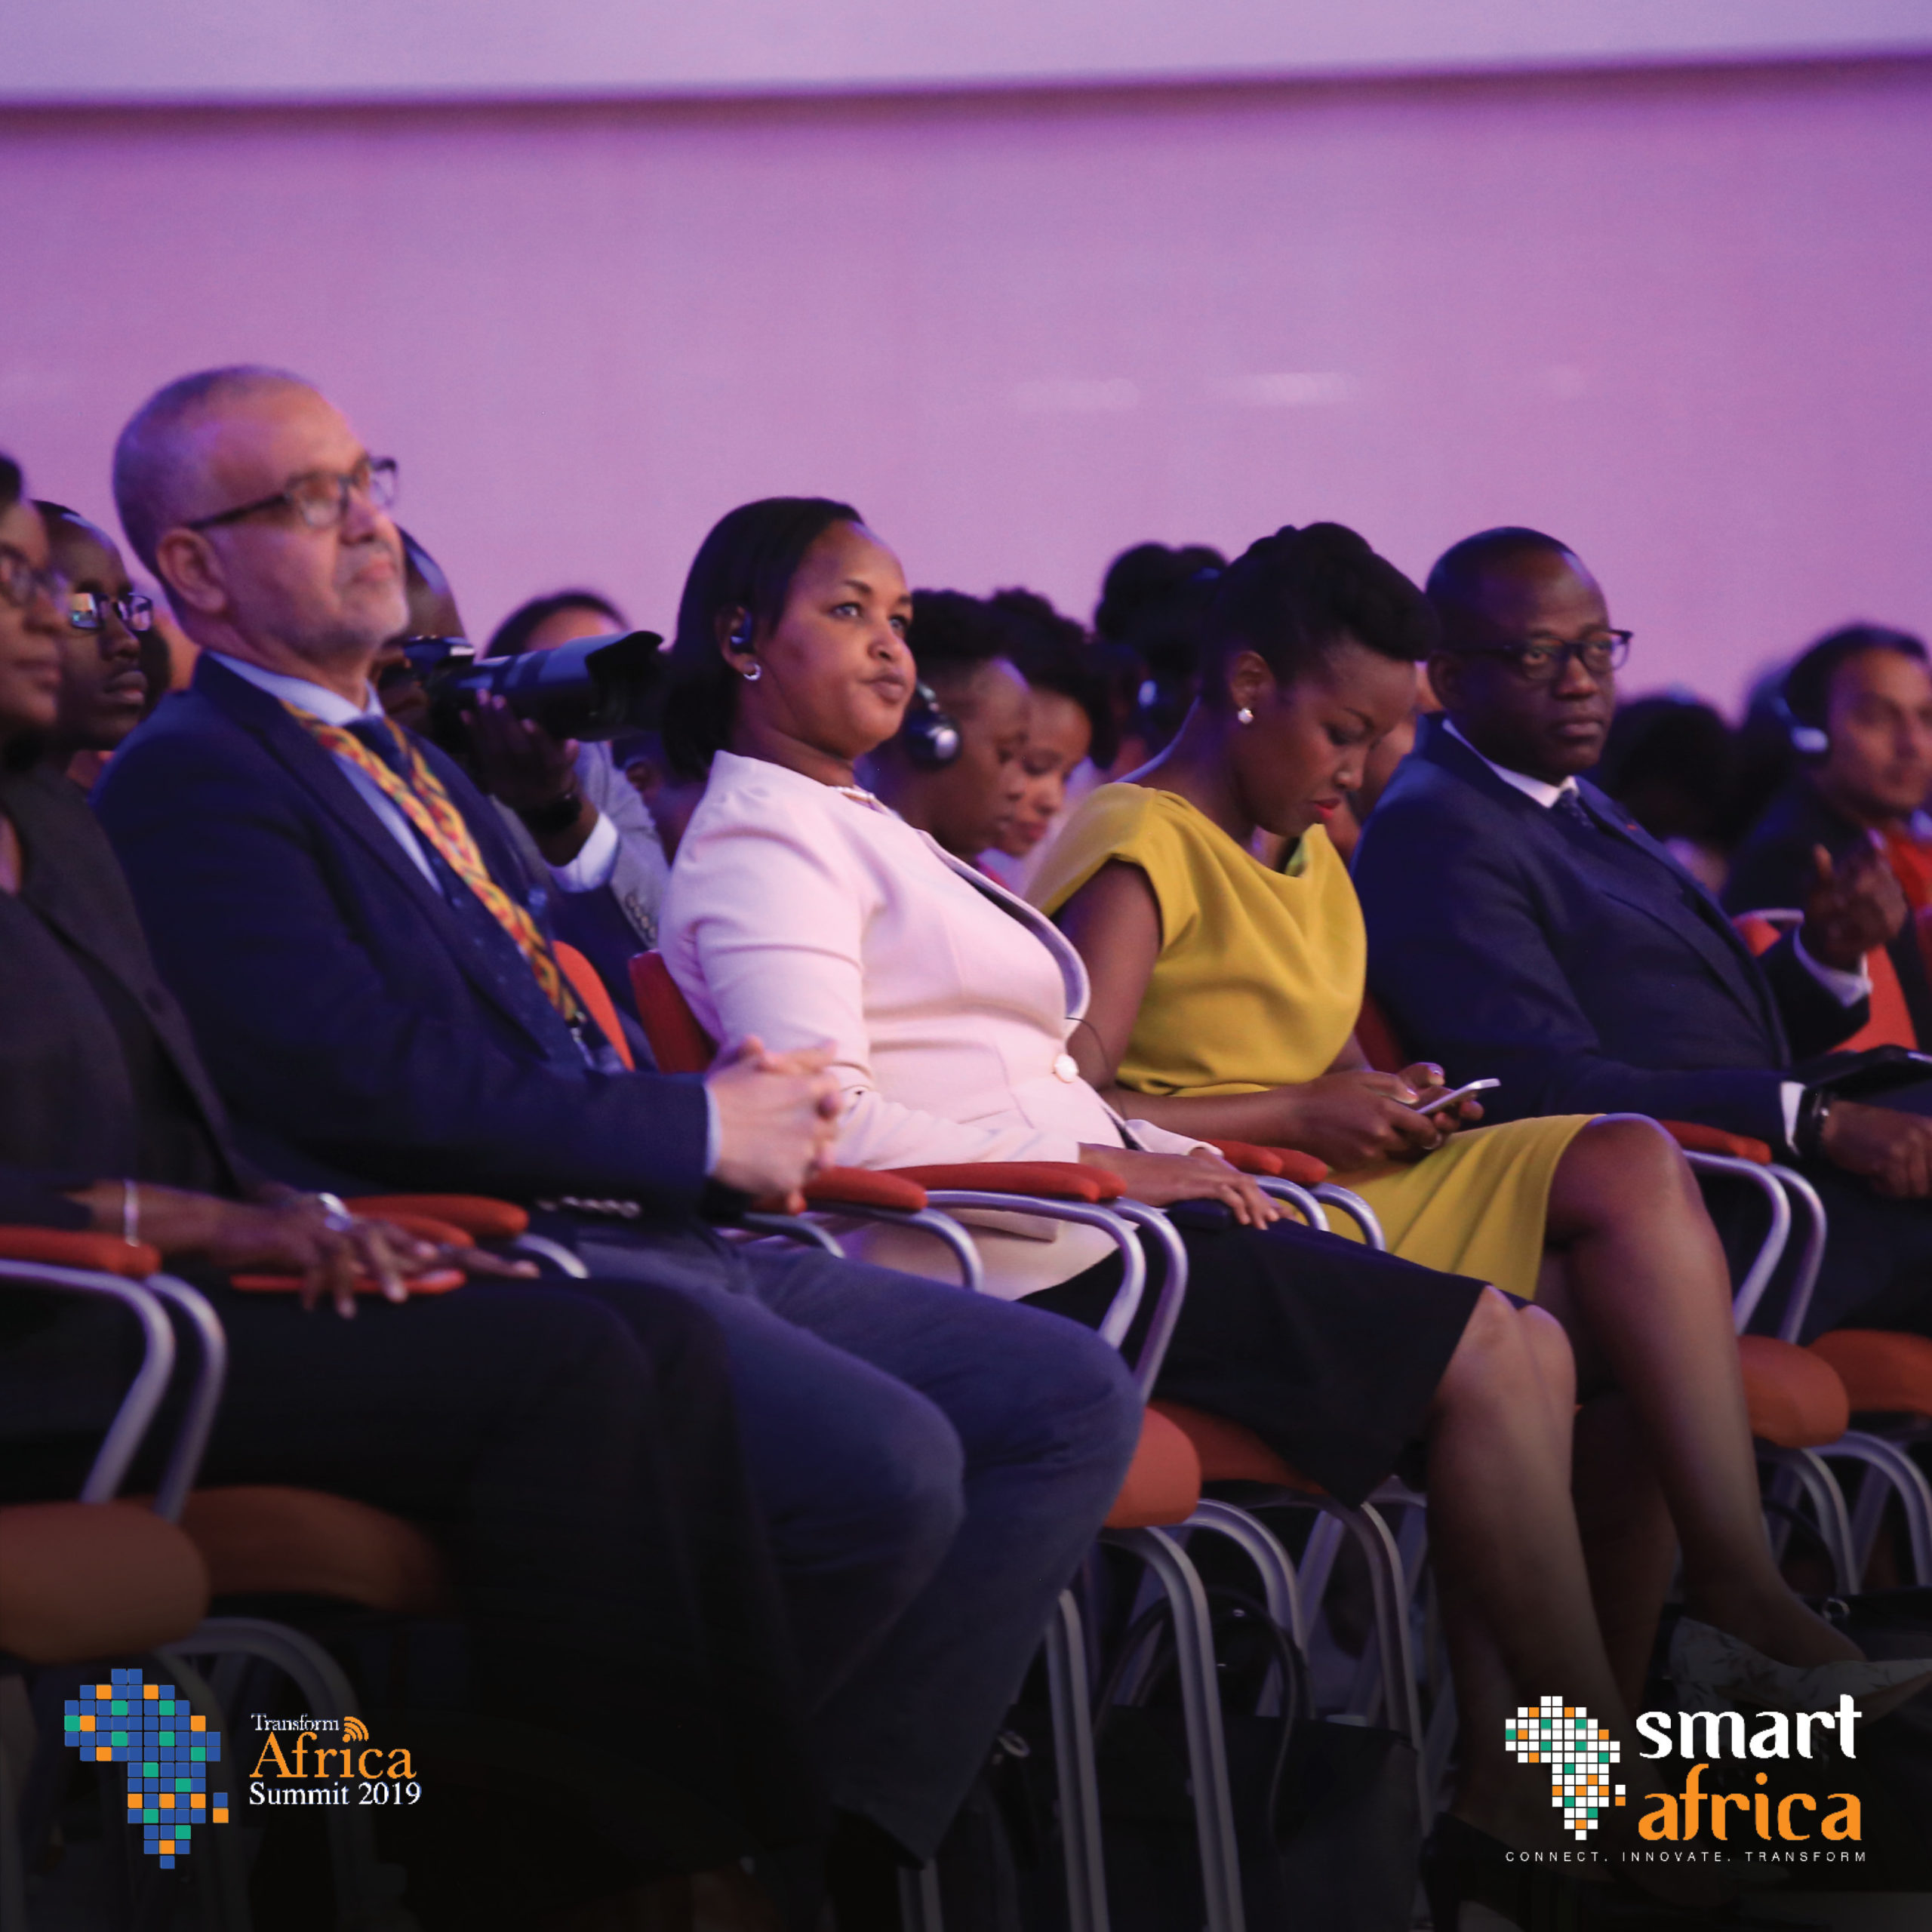 Impressions from the Transform Africa Summit Kigali